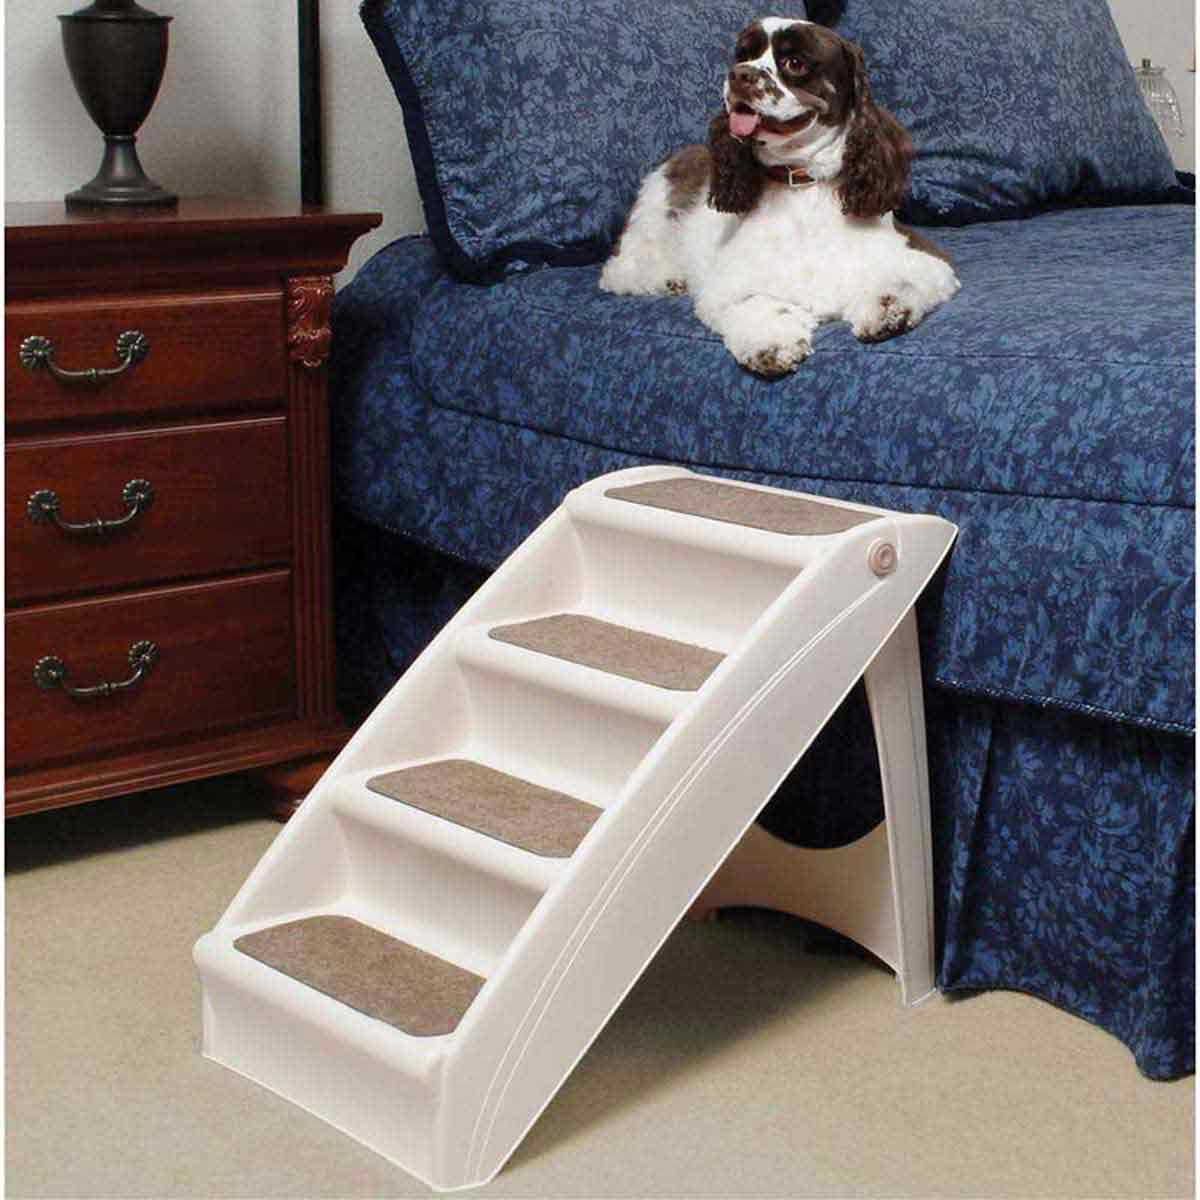 Solvit Pupstep + Plus Pet Stairs - 24 inches by 16 inches by 20 inches